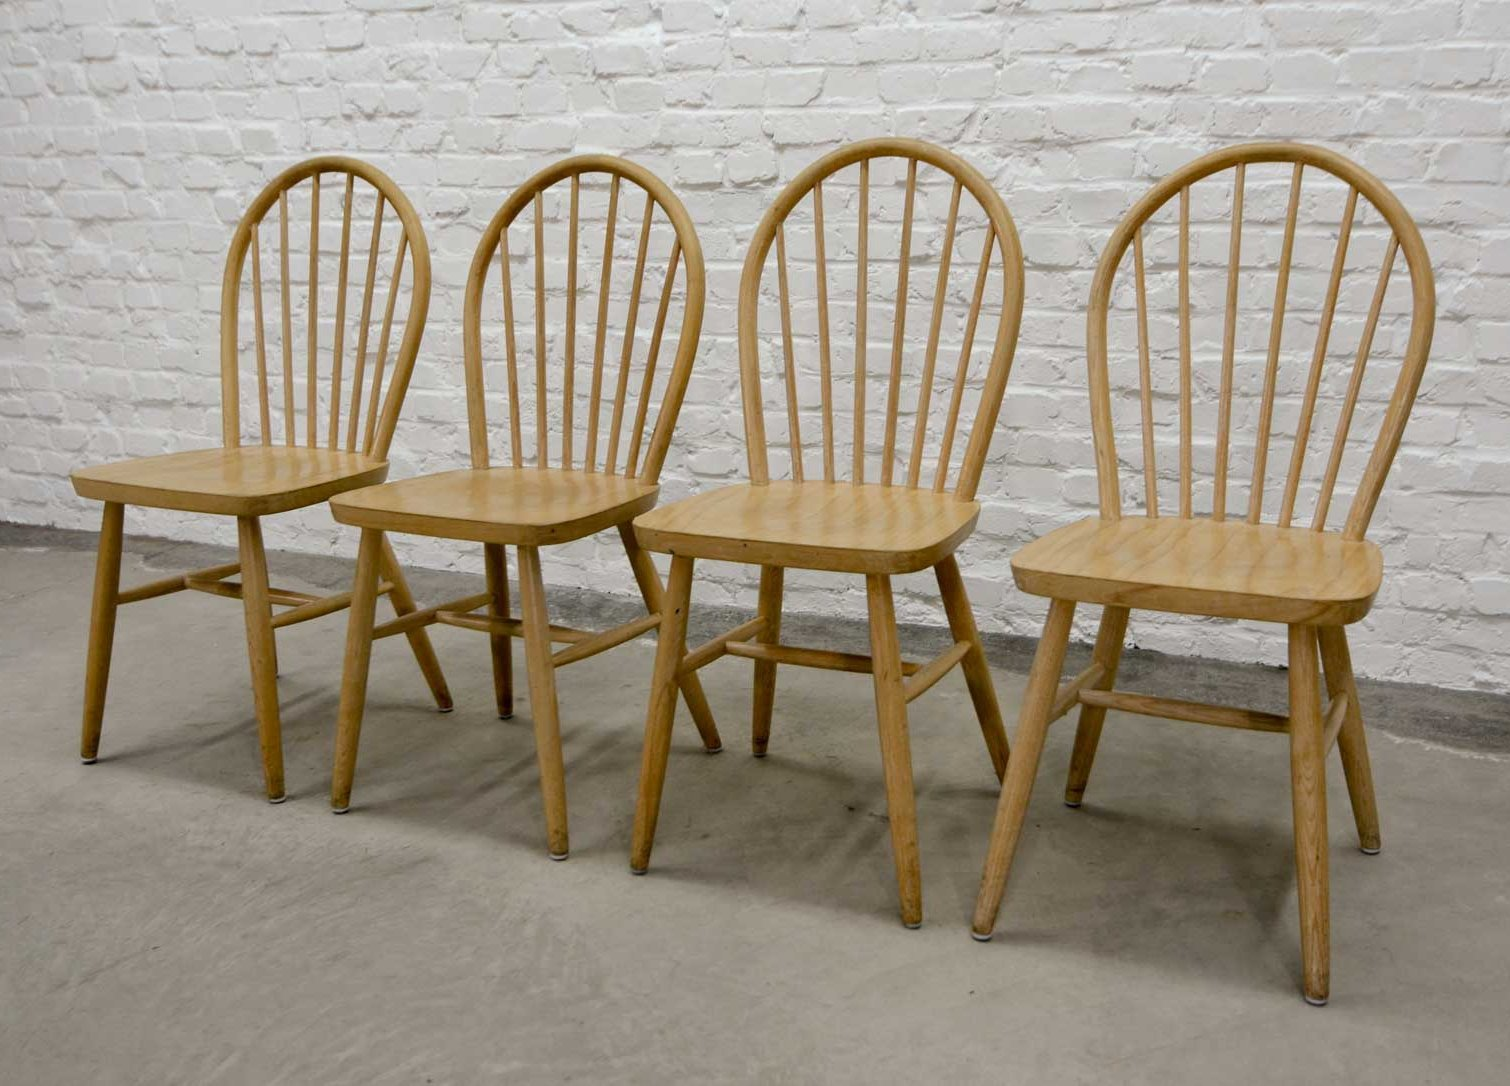 Picture of: Mid Century Scandinavian Design Spindle Back Wooden Dining Chairs 1960s 75396